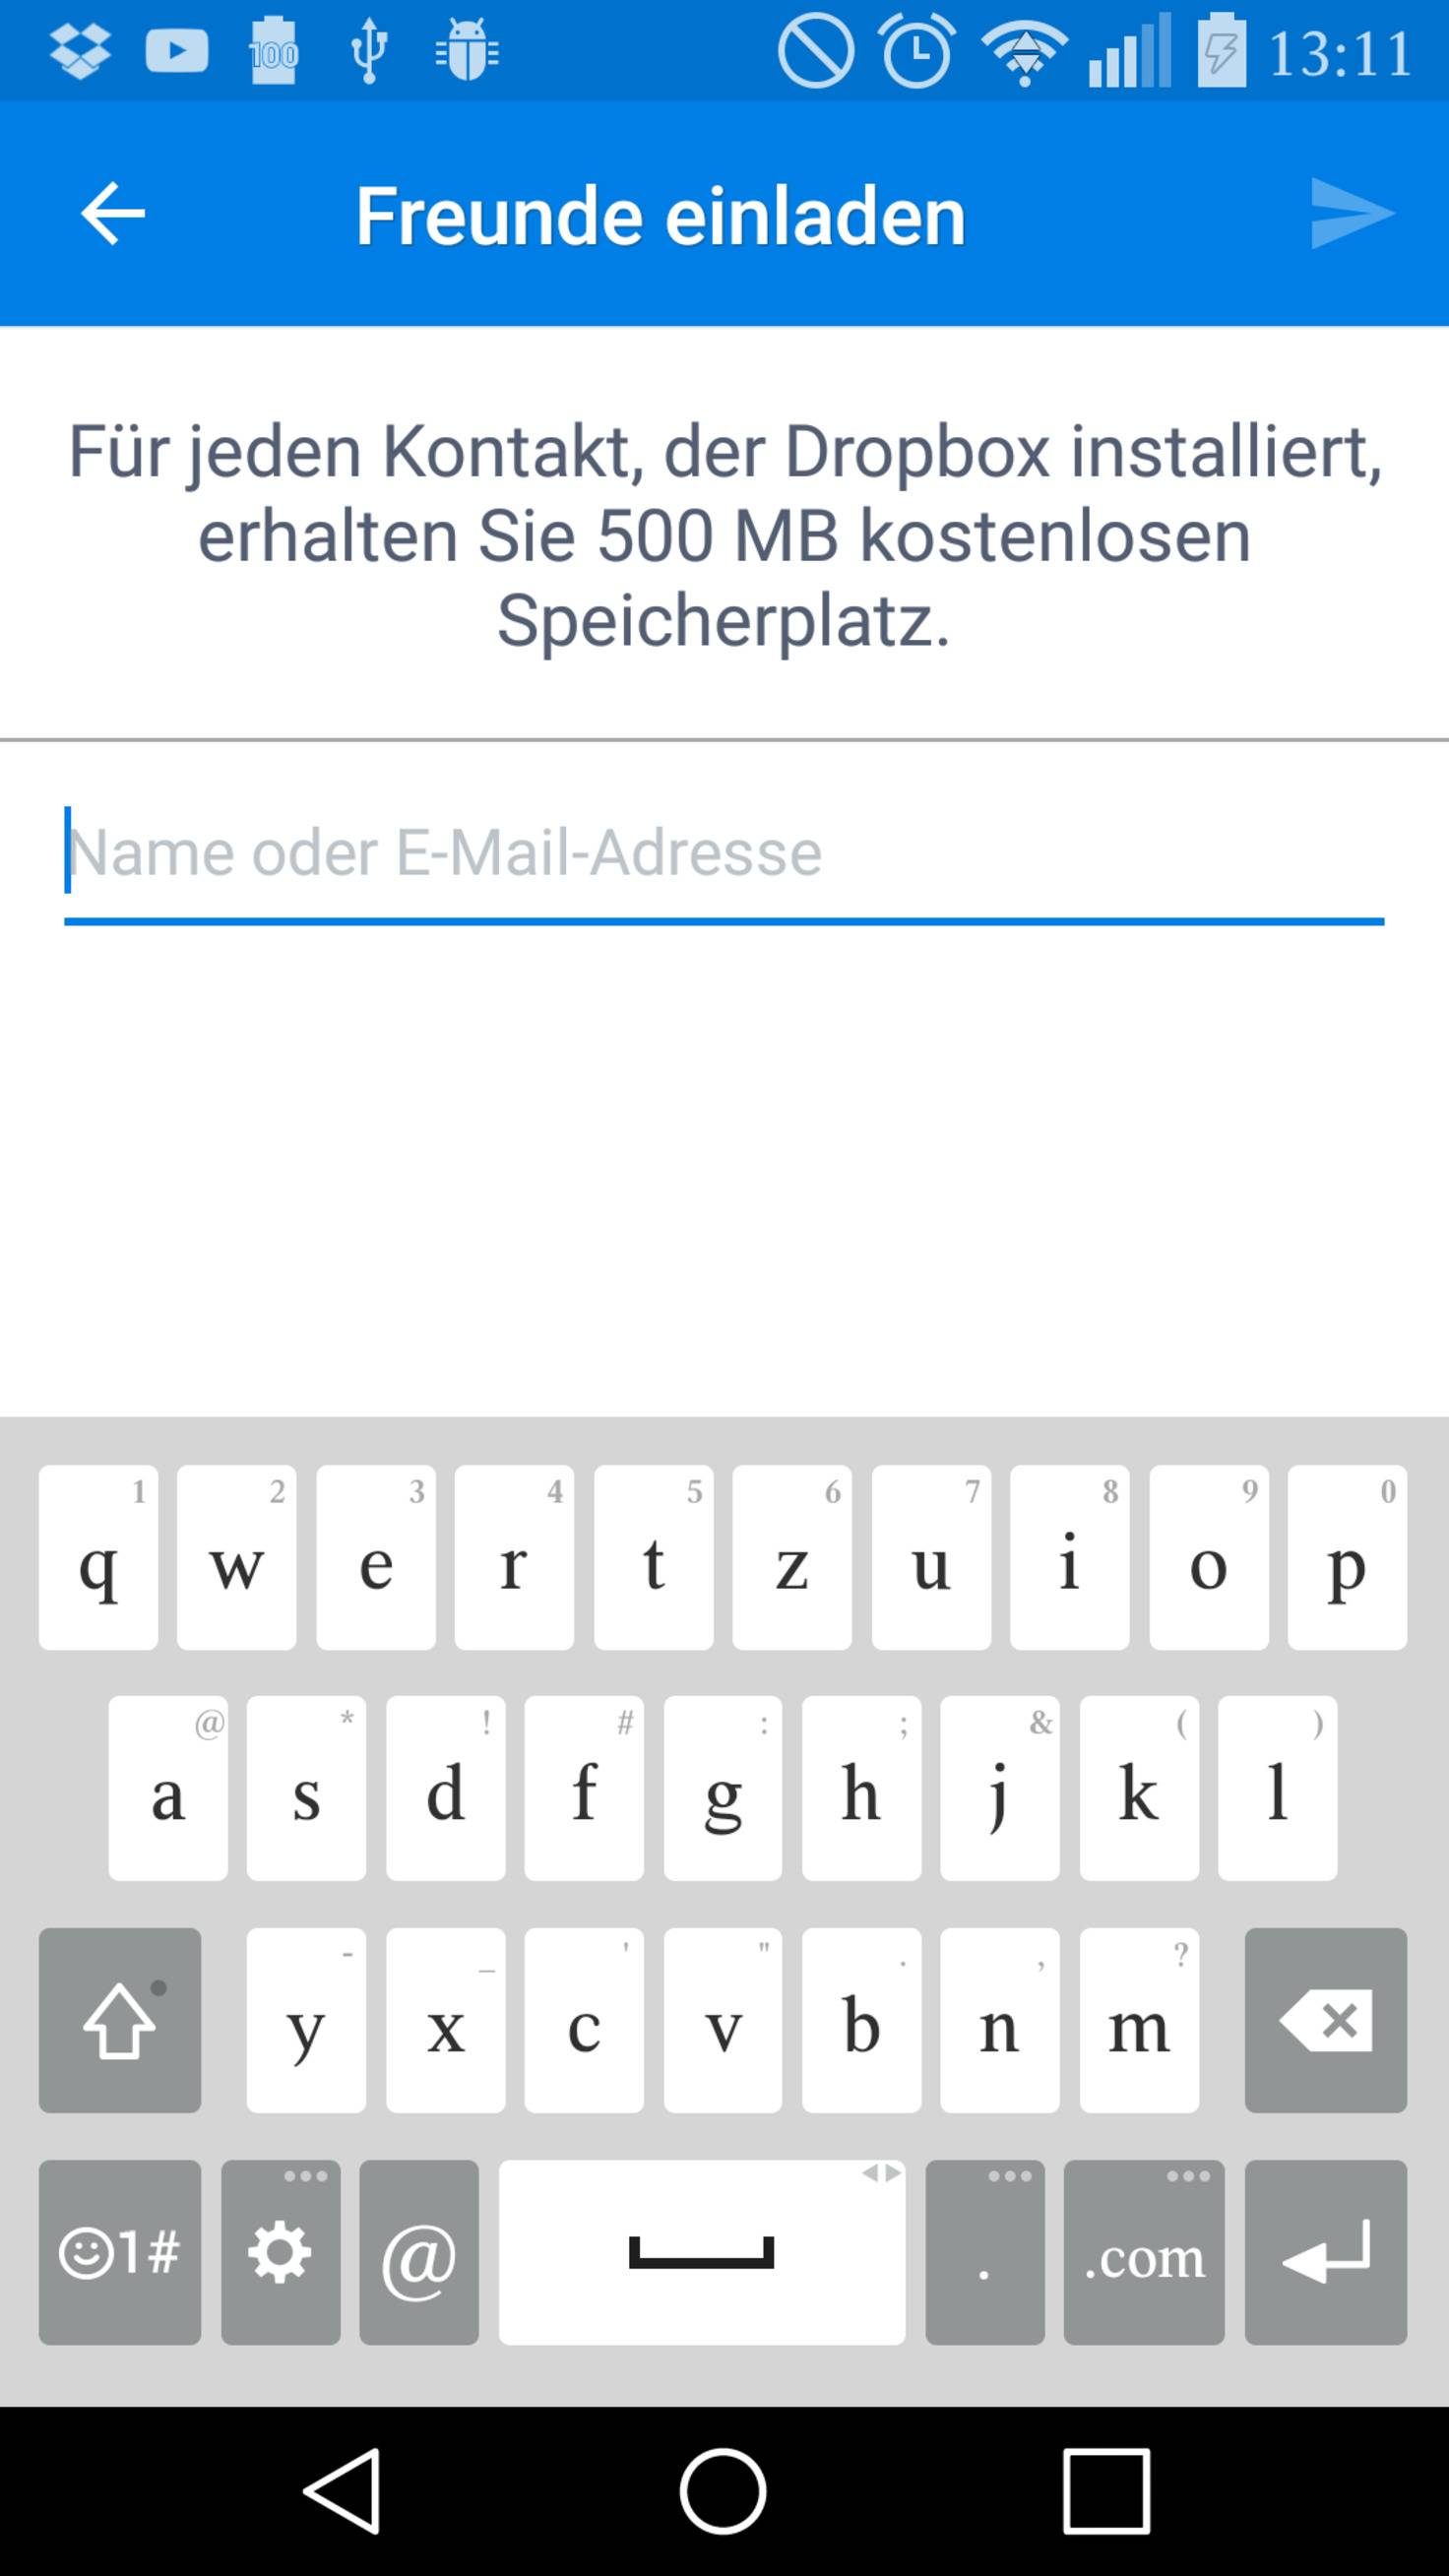 Dropbox Freunde einladen TURN ON